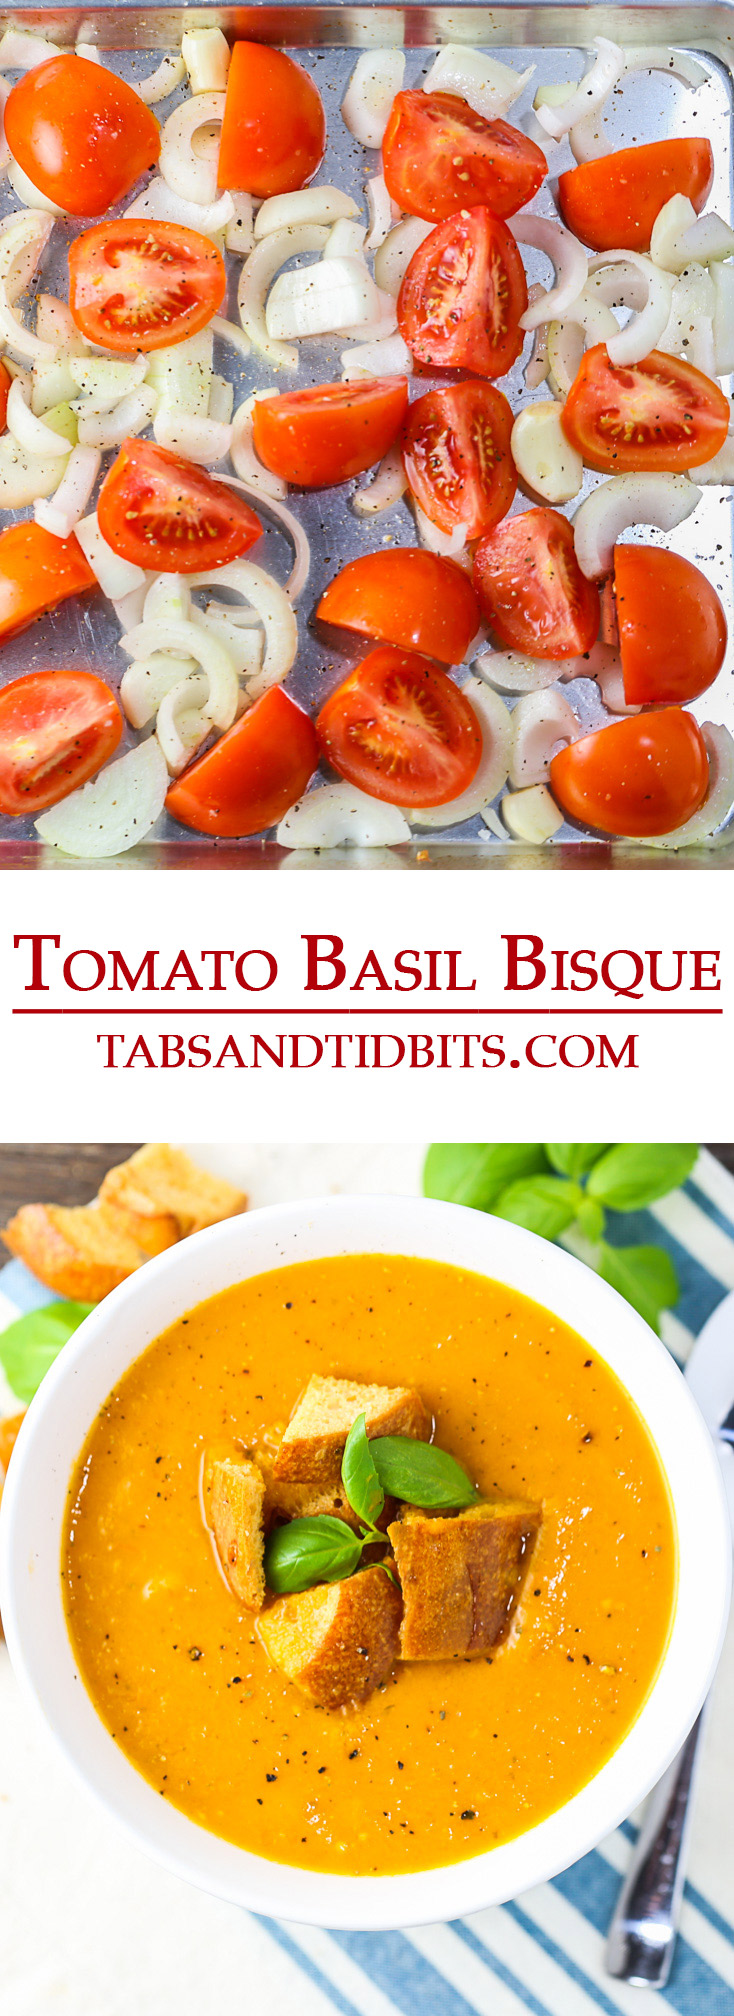 Fresh roasted tomatoes, onions and garlic are simmered together and blended with freshbasil, creating this delicious and creamy vegan Tomato Basil Bisque!